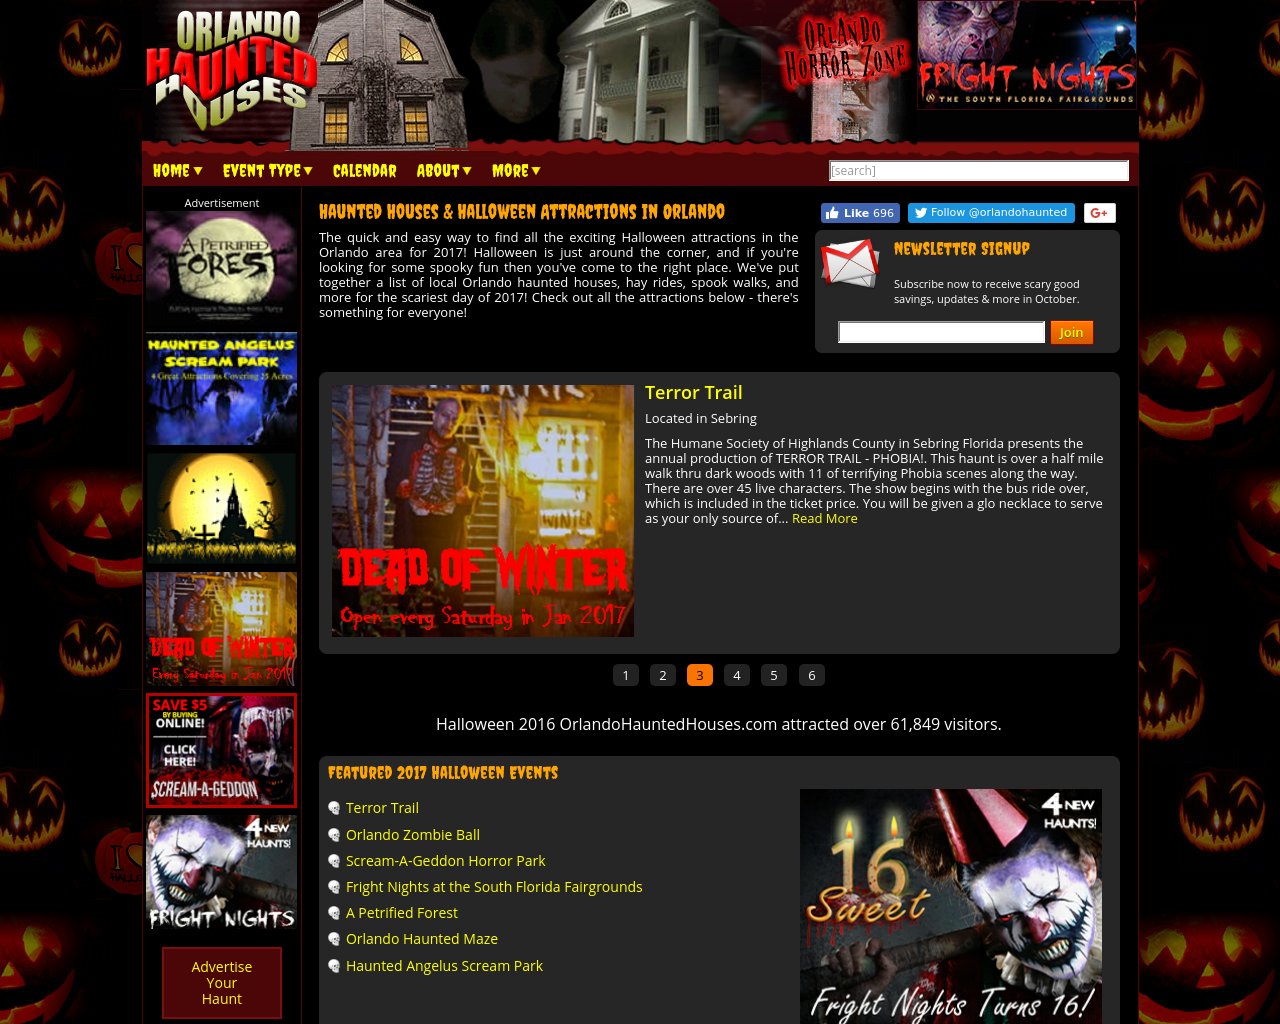 Orlando-Haunted-Houses-Advertising-Reviews-Pricing